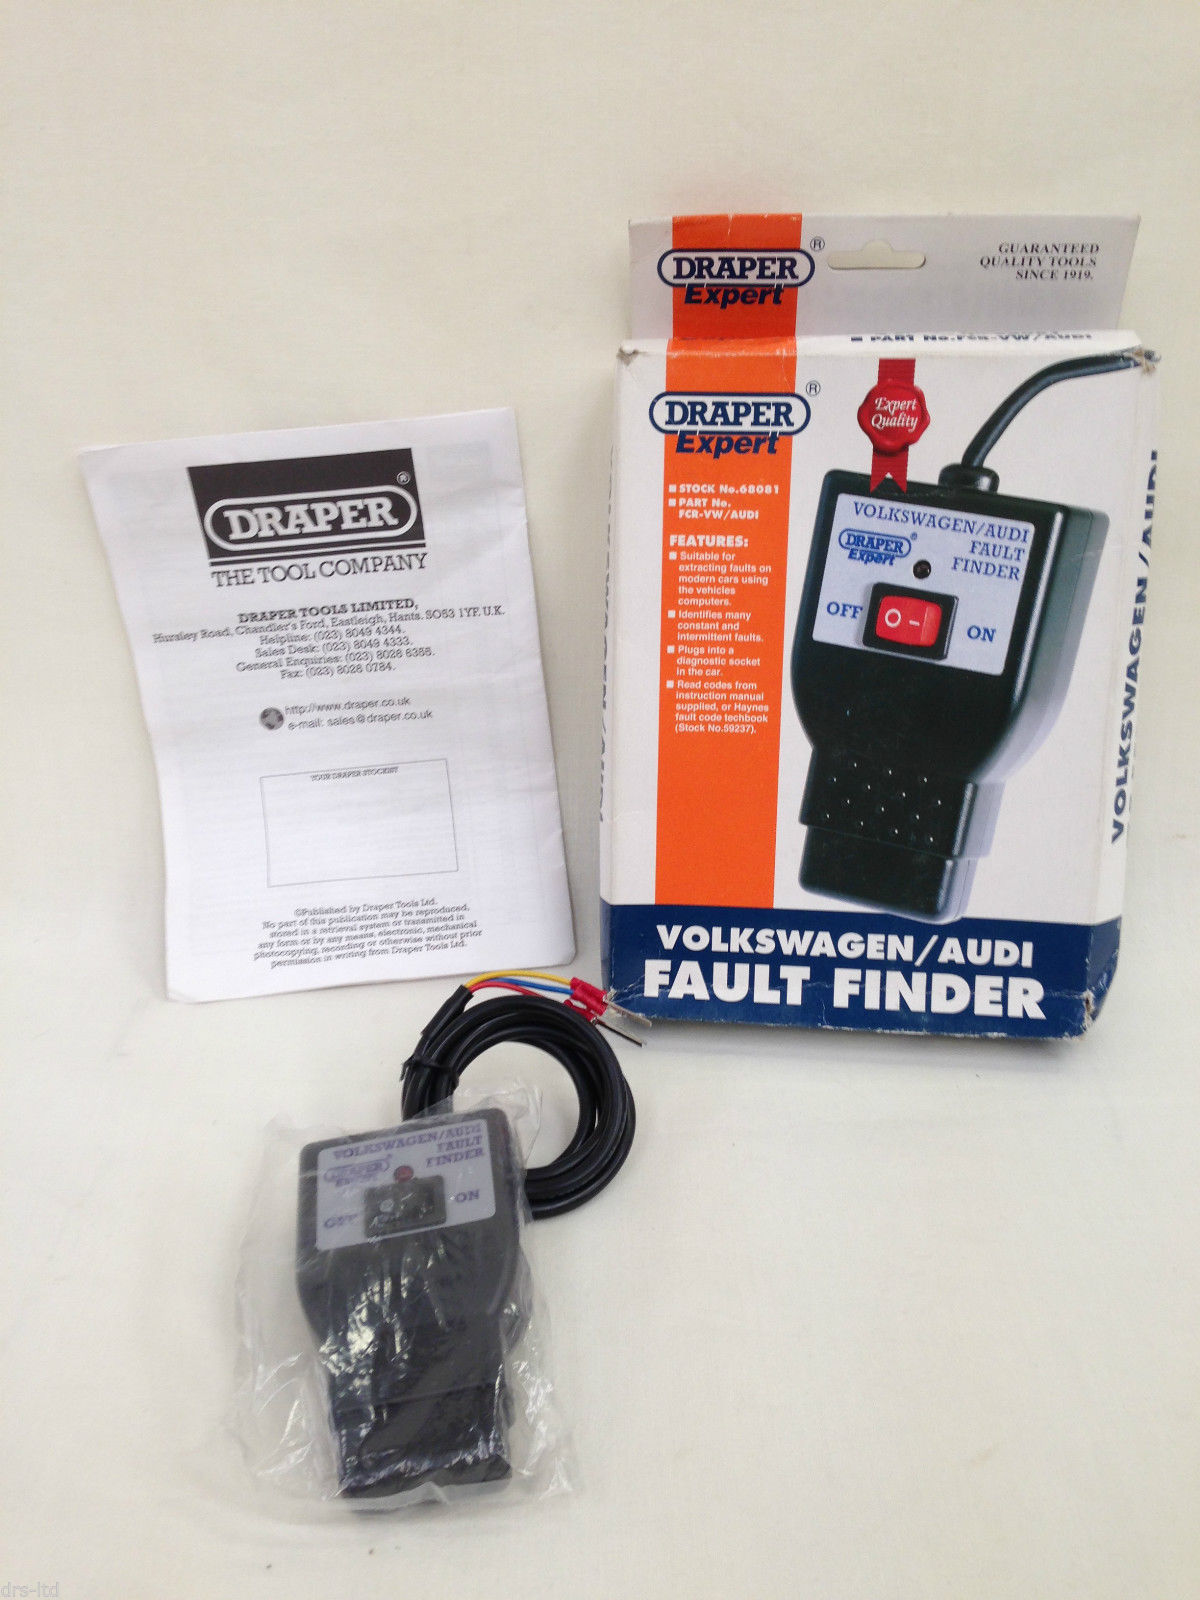 audi | tools in stock, uk, selling draper tools, sealey tools